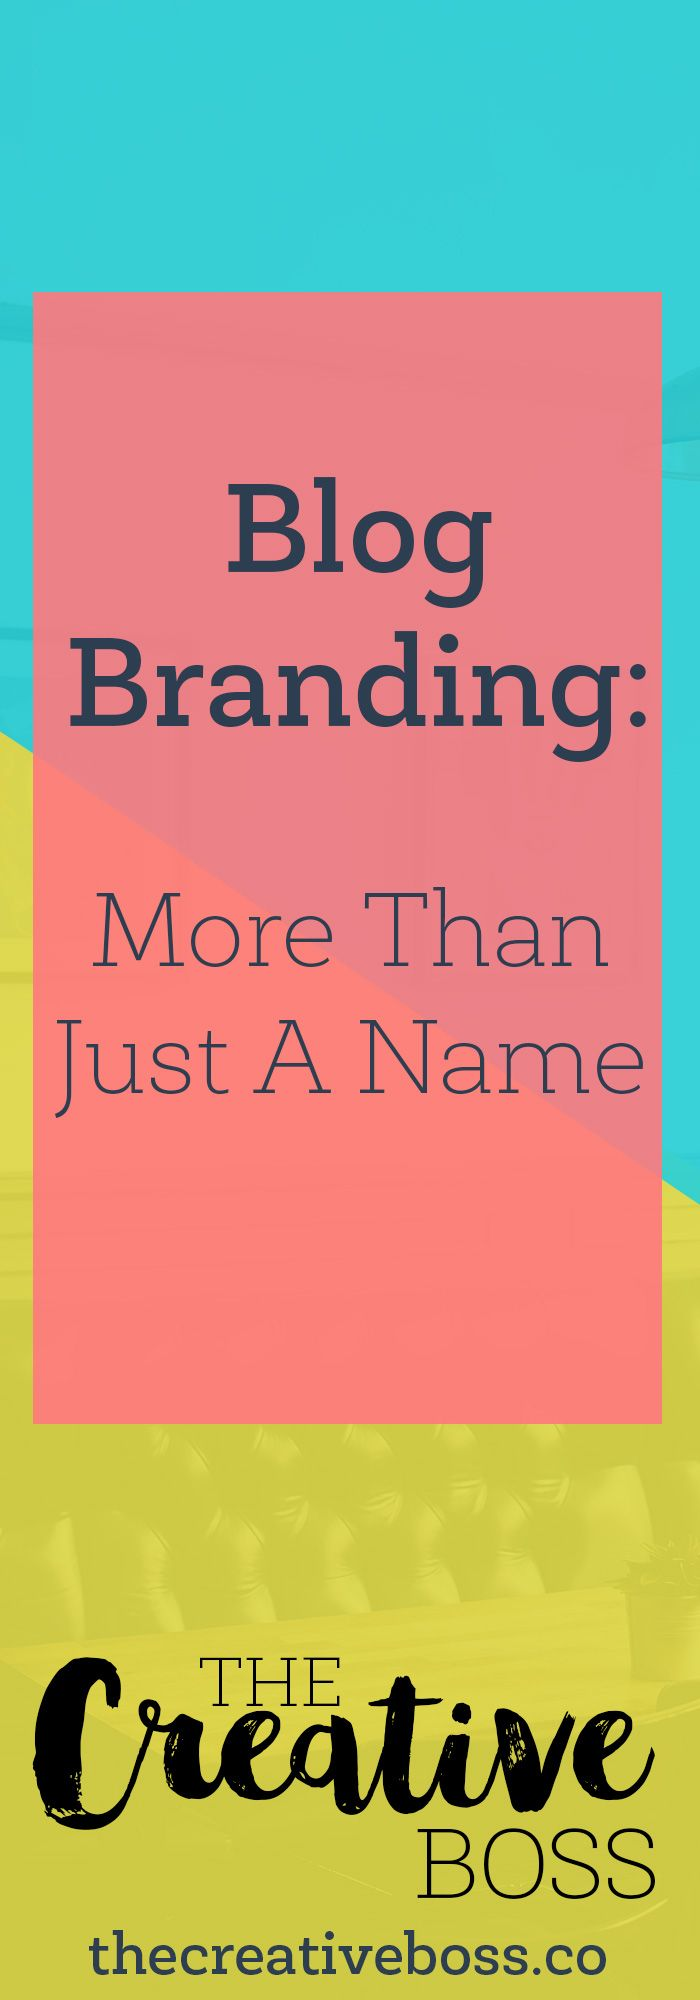 Blog Branding More Than Just A Name Best Of The